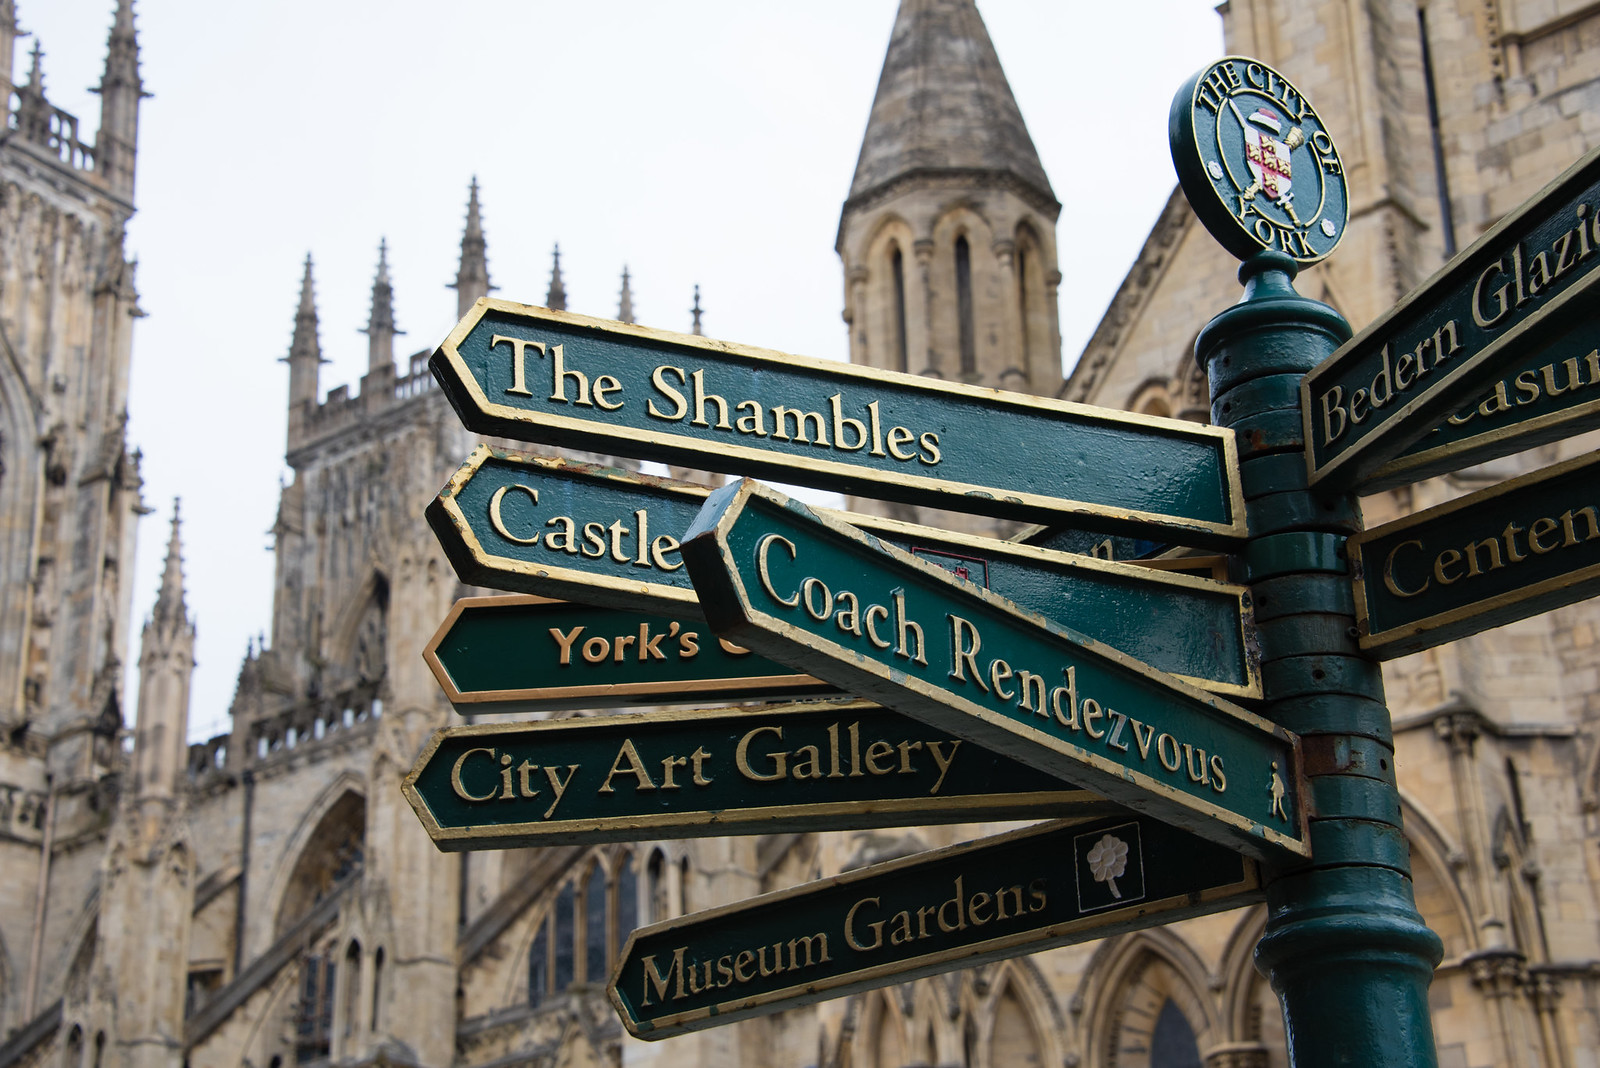 Directions to the Shamble from York Minster